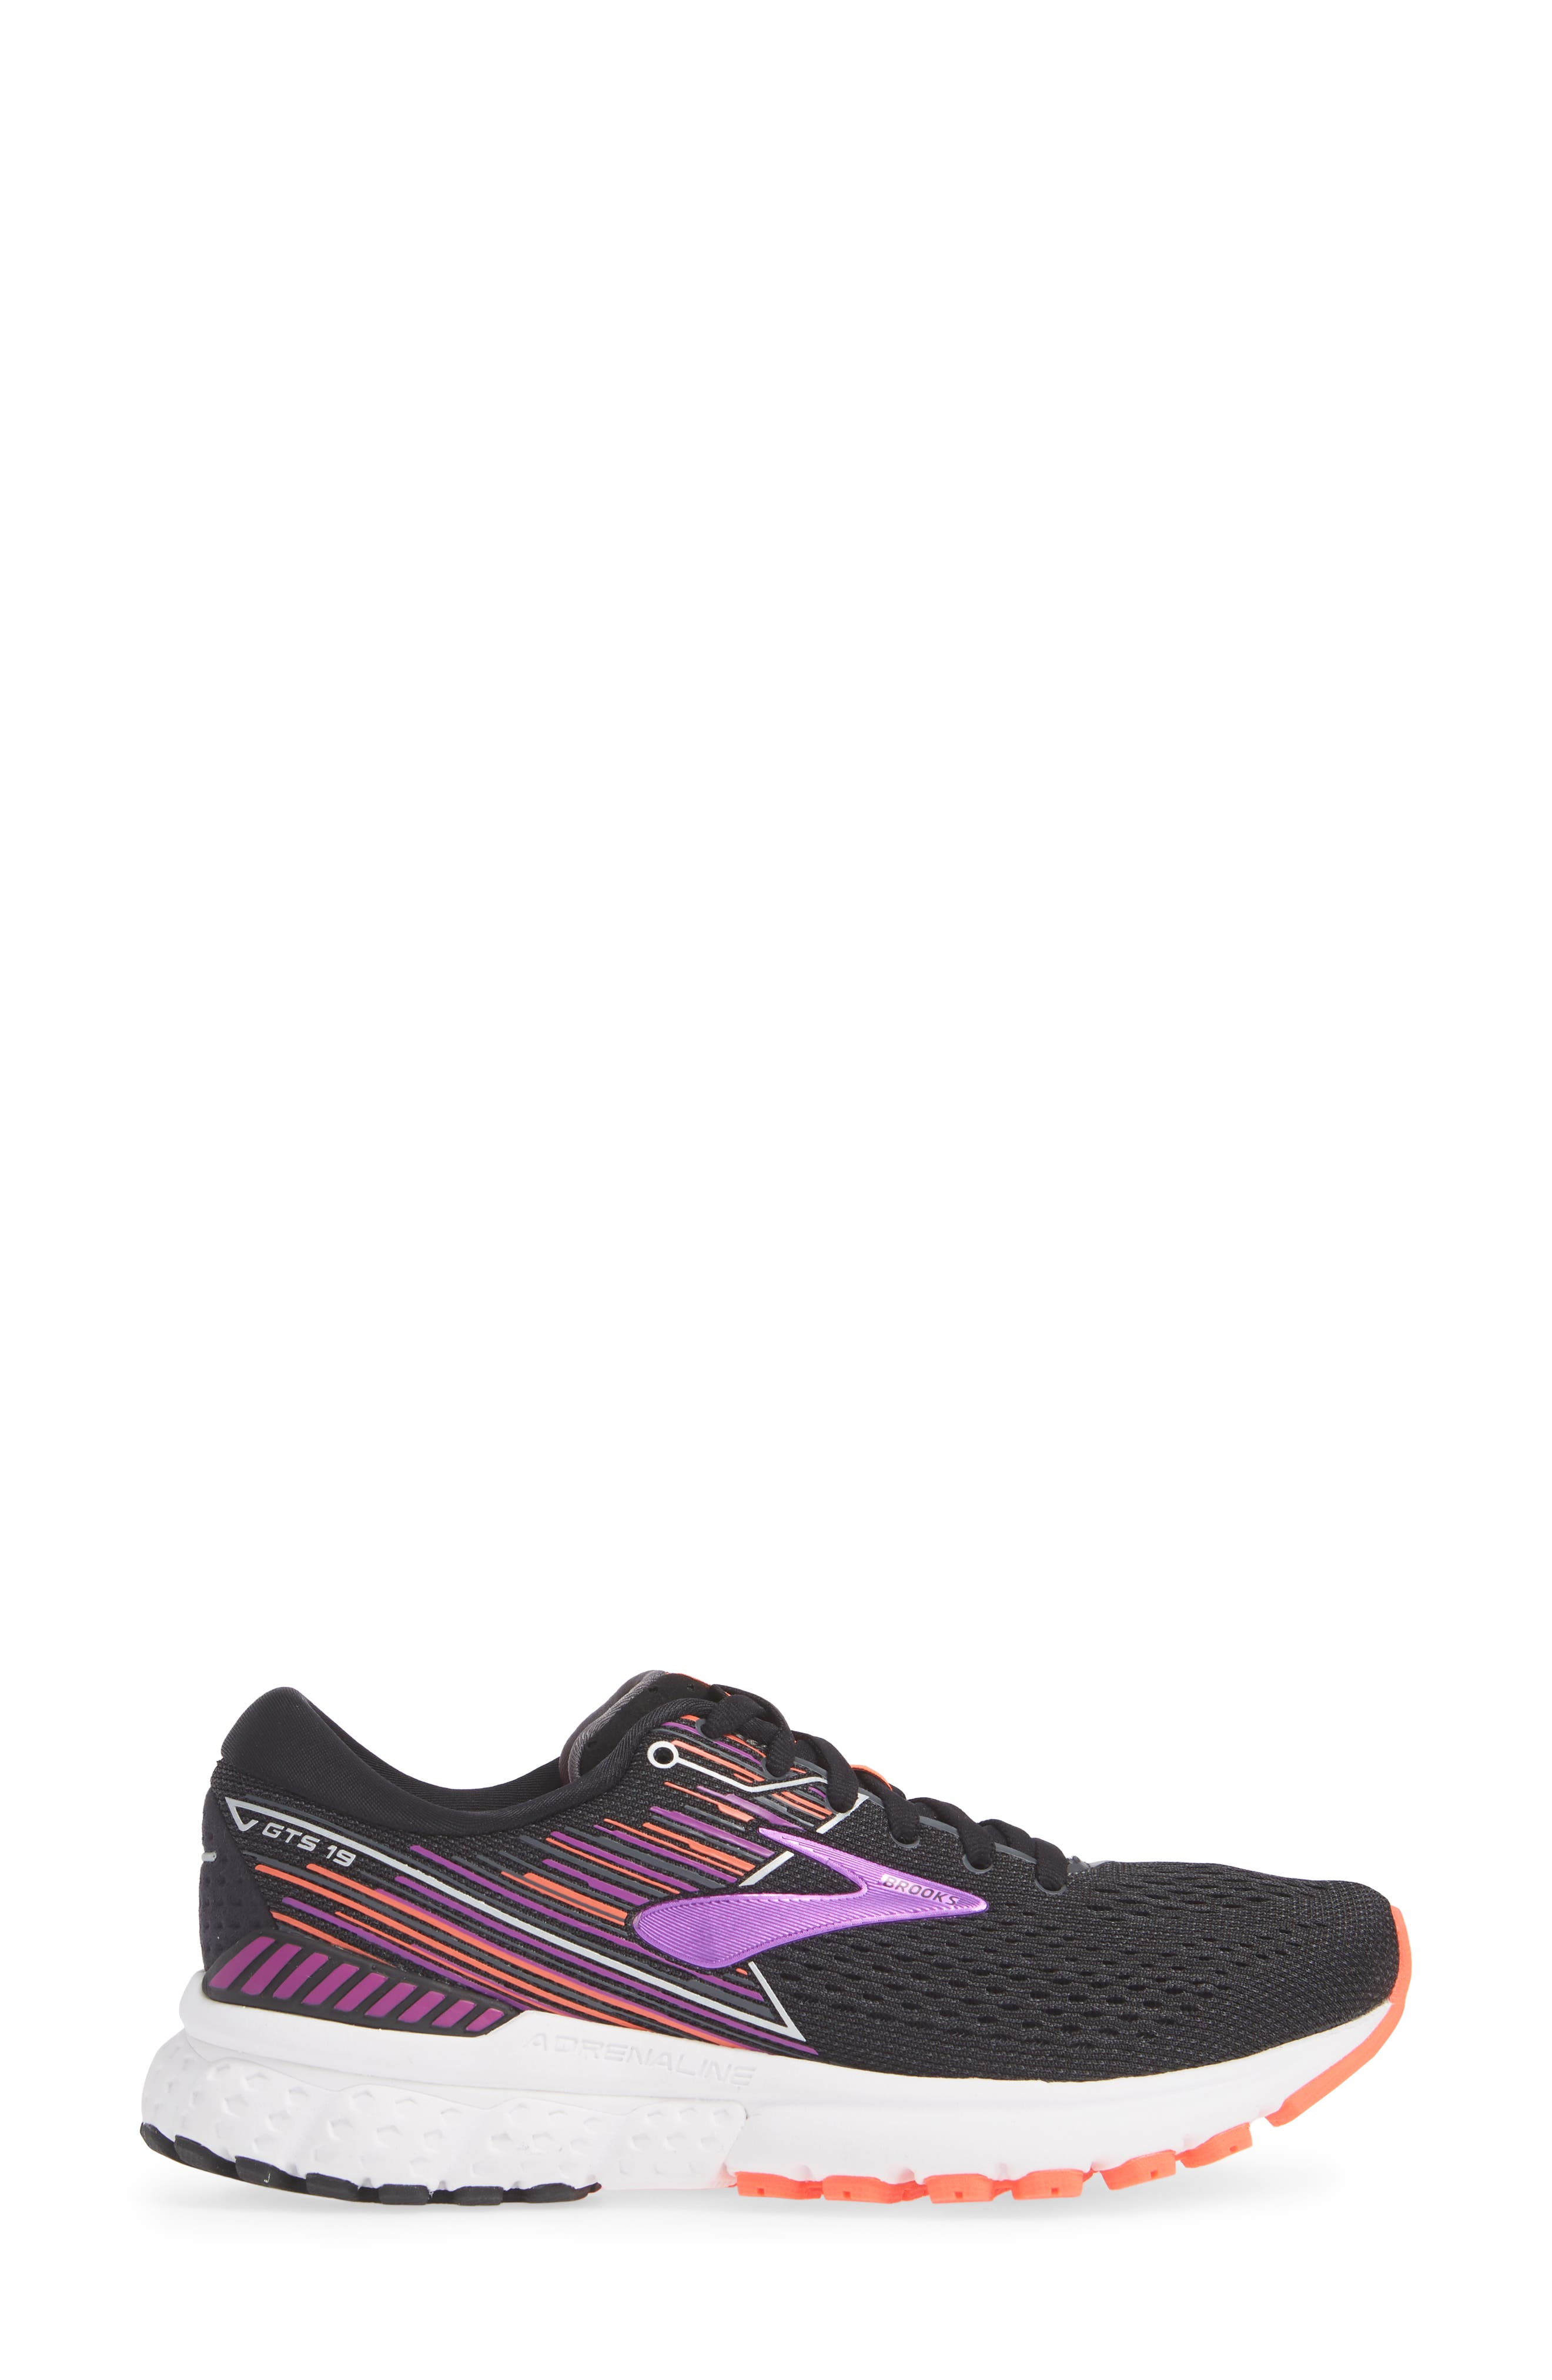 BROOKS, Adrenaline GTS 19 Running Shoe, Alternate thumbnail 3, color, BLACK/ PURPLE/ CORAL